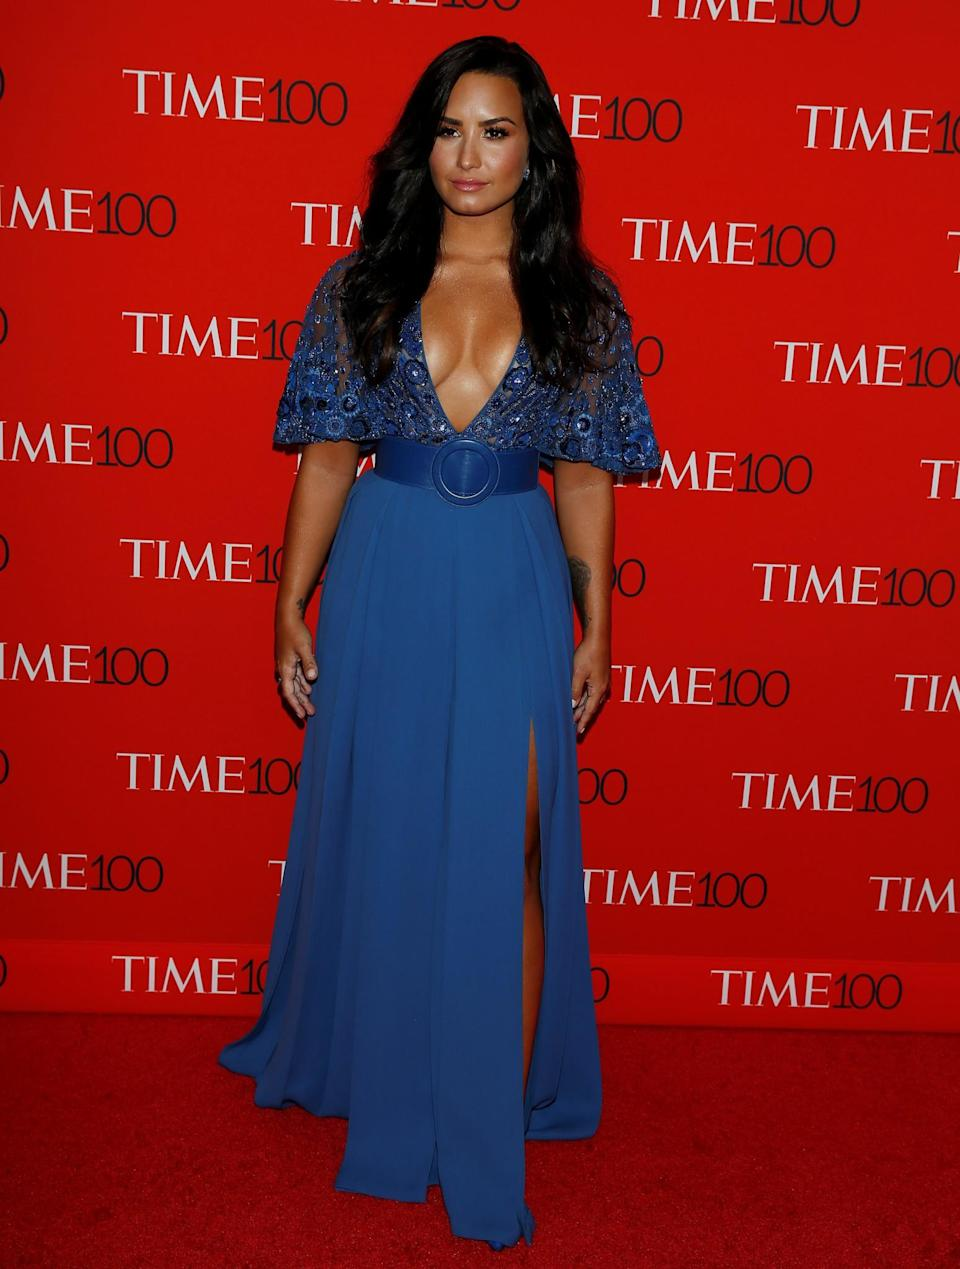 <p>The singer stole the show in a plunging blue Zuhair Murad creation. (Photo: Reuters) </p>